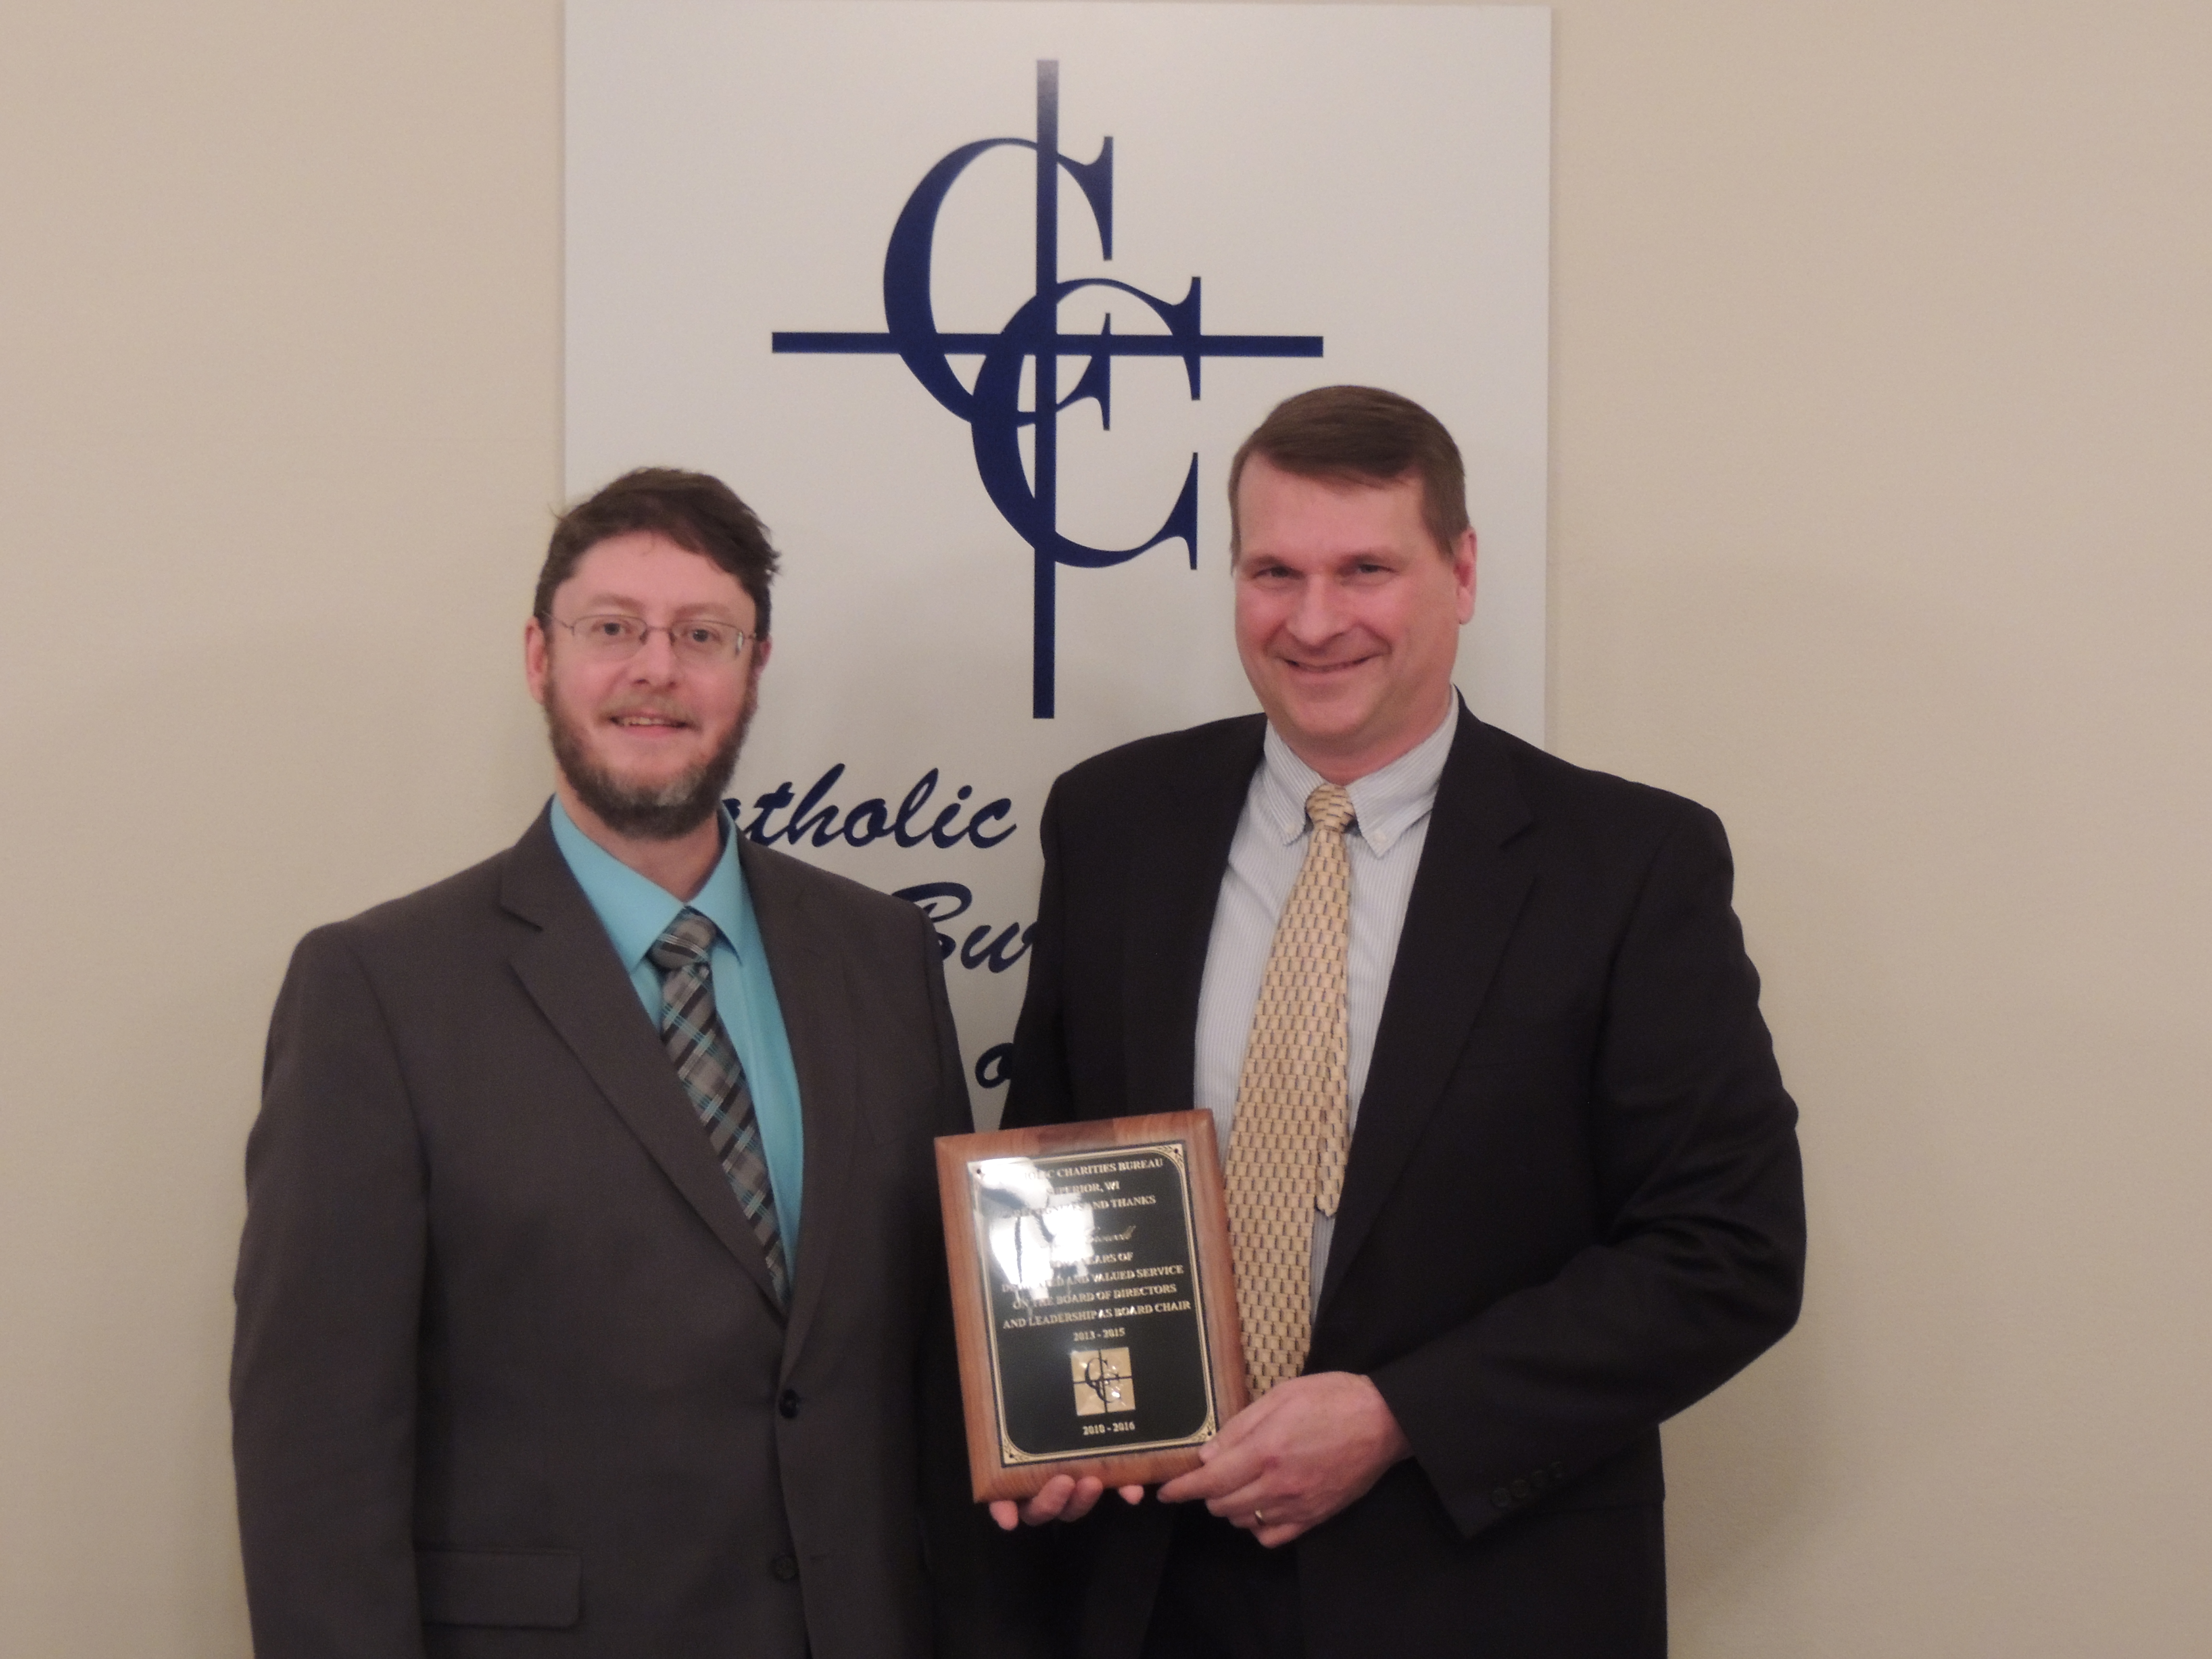 Kyle Torvinen (left), Chair of the Catholic Charities Bureau Board of Directors presents Matt Crowell (Right) with a plaque for his service on the Board